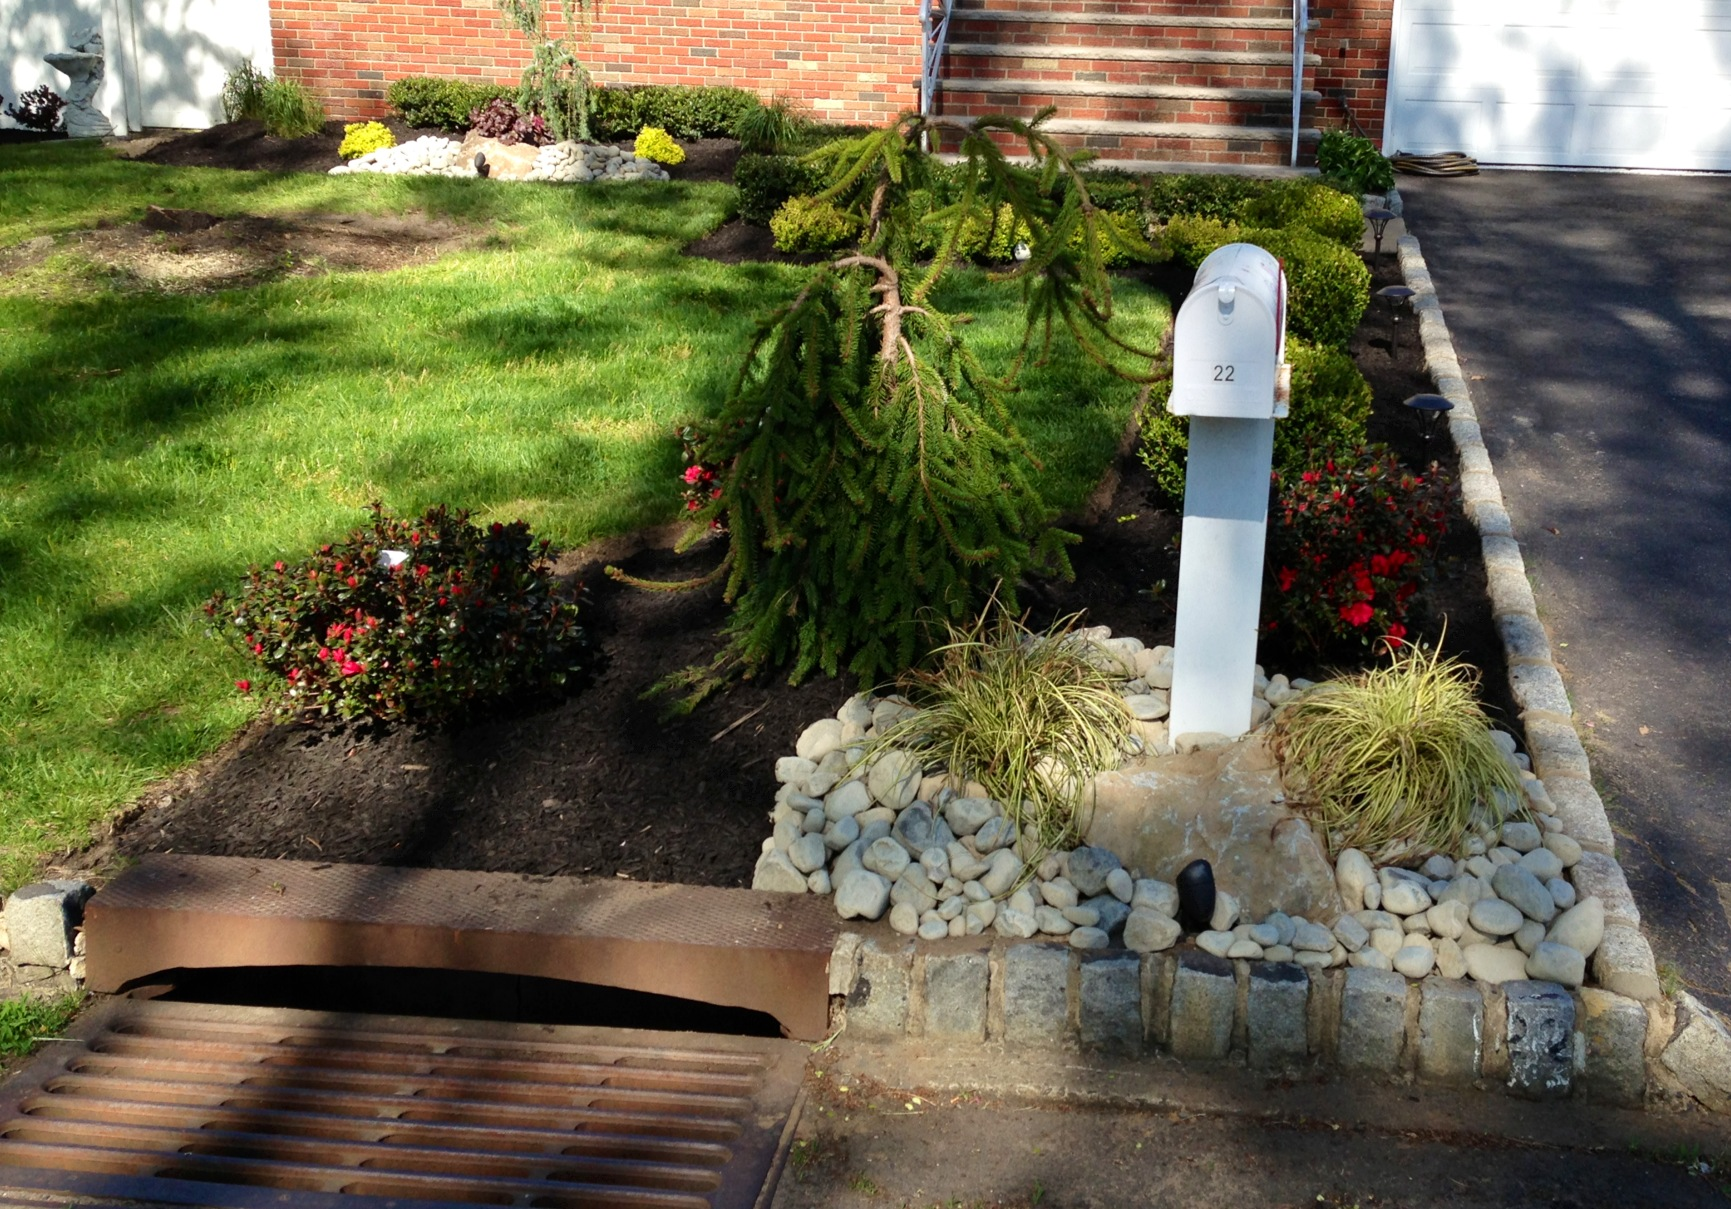 LANDSCAPING SERVICES IN SOUTH RIVER, SAYREVILLE